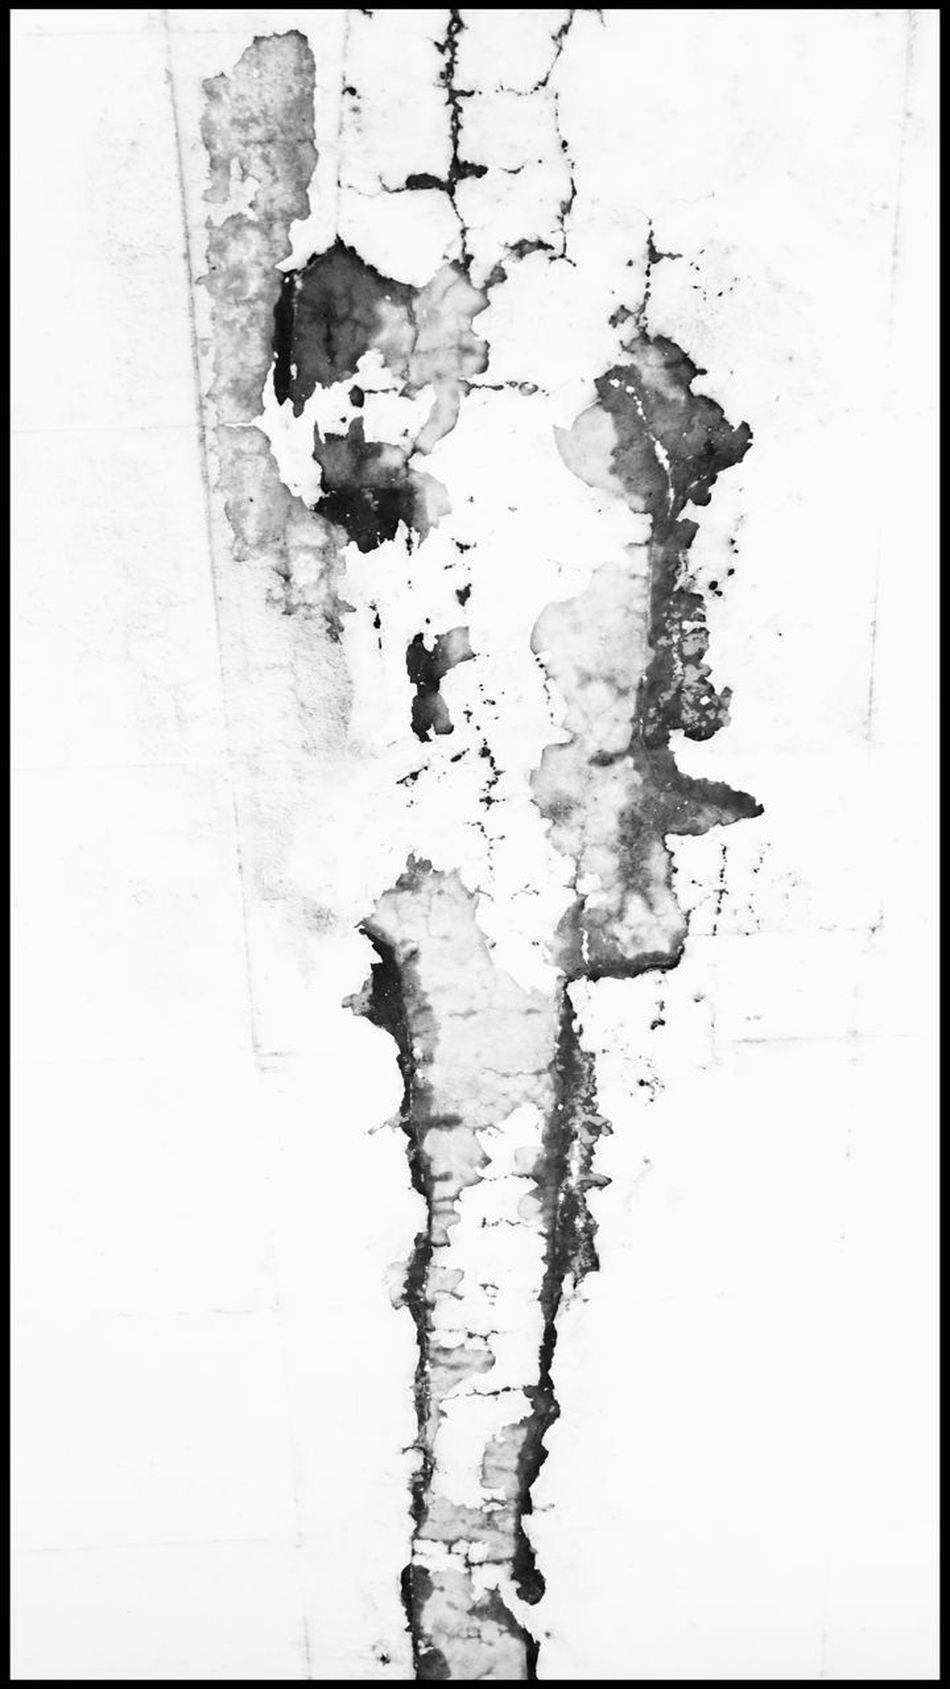 Abstract Ink Paint Wall Blackandwhite Black & White